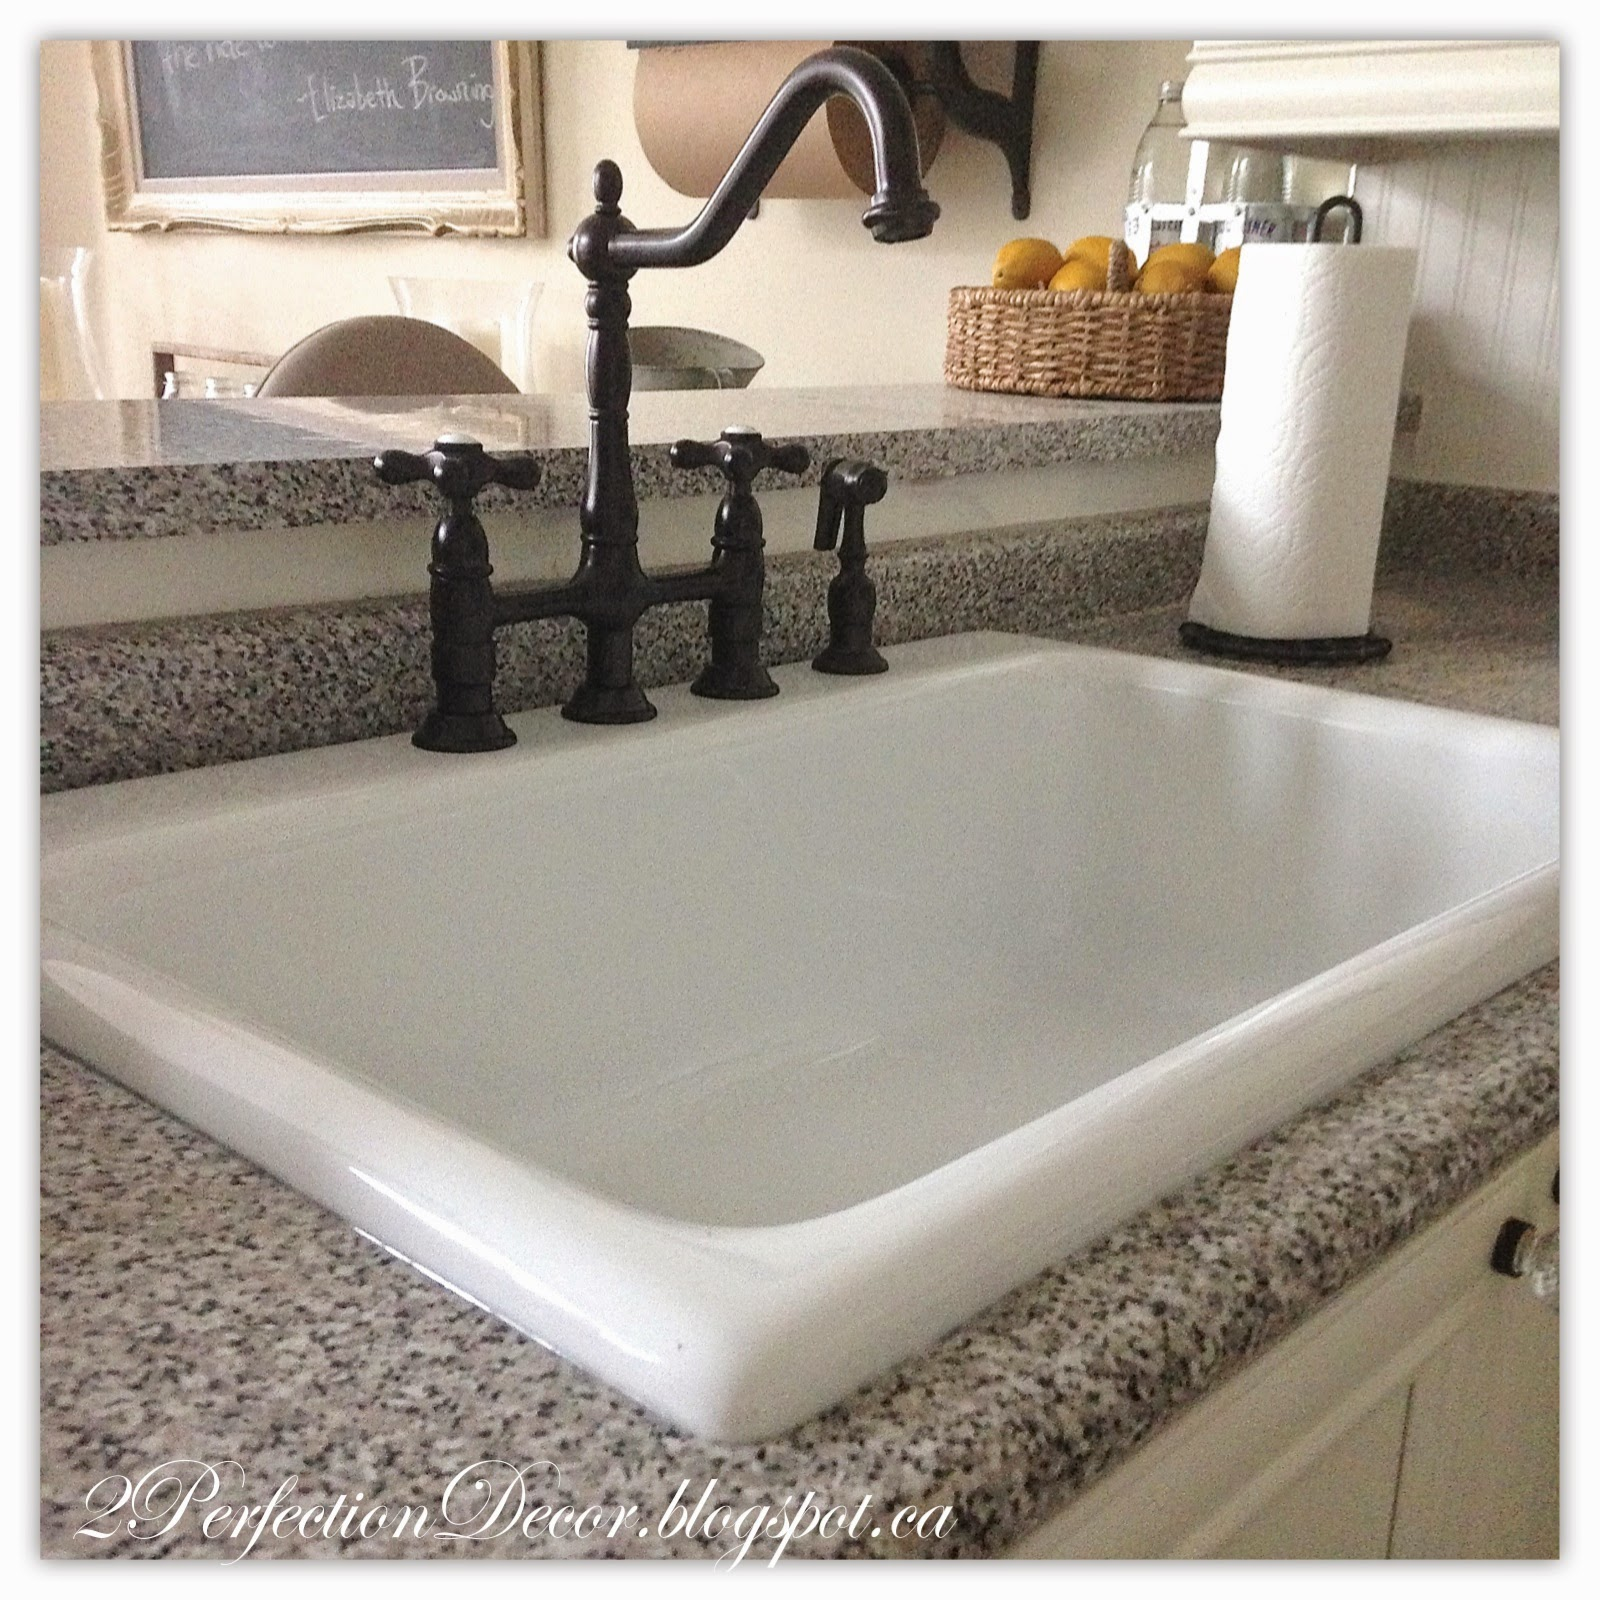 new farmhouse kitchen sink faucet farmhouse faucet kitchen The oil rubbed faucet is great as it has an old world charm look to it It all definitely lends to the French Country Farmhouse kitchen vibe I was aiming